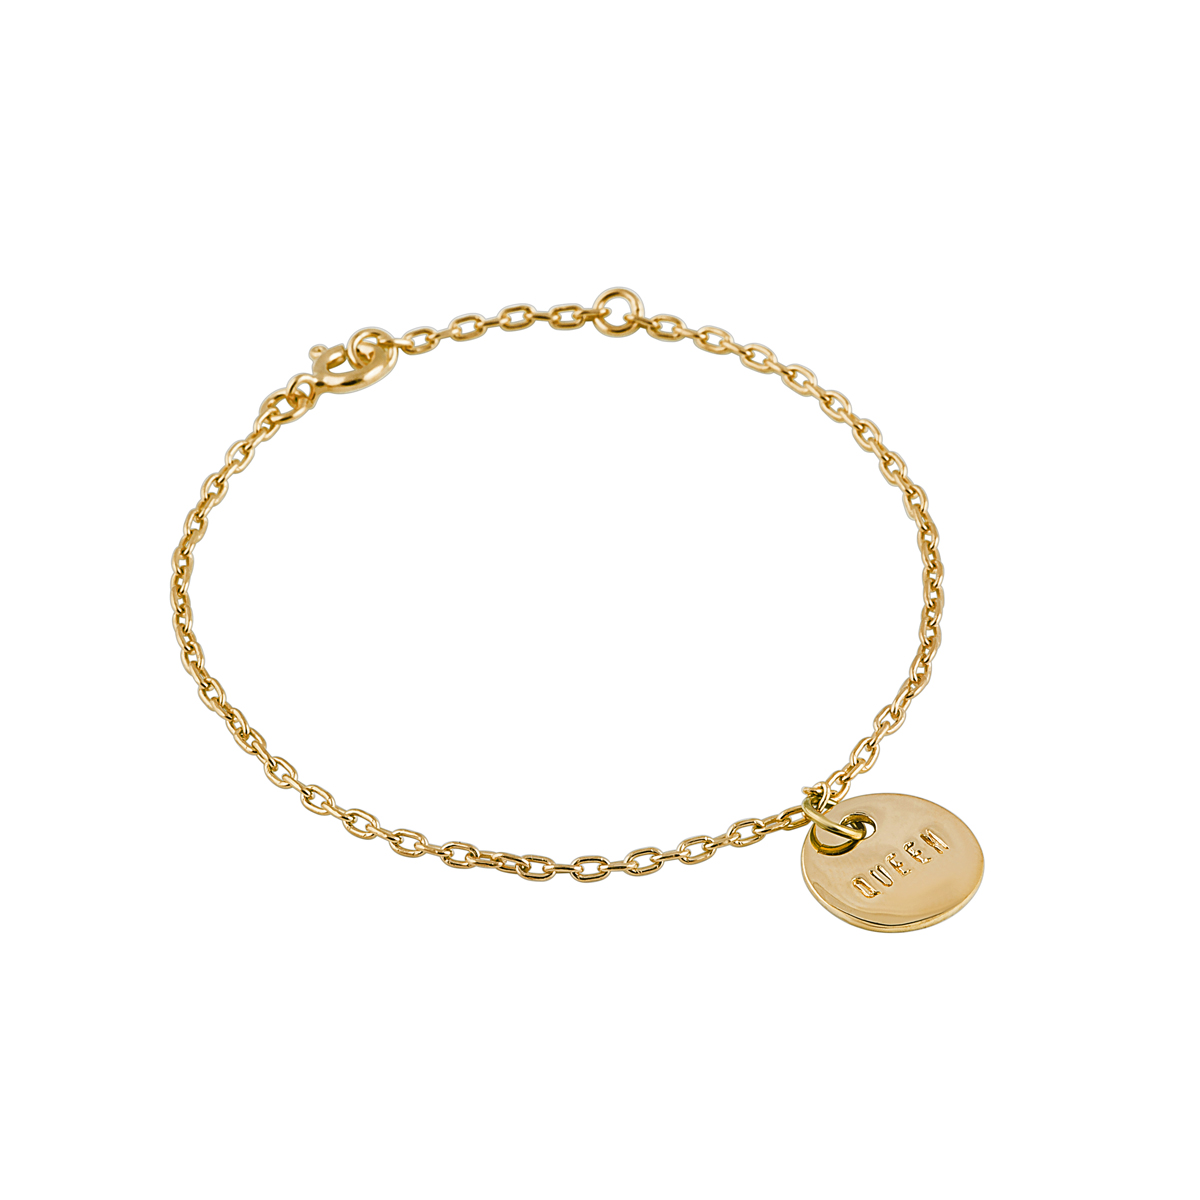 QUEEN COIN BRACELET GOLD in the group BRACELETS at EMMA ISRAELSSON (brace034)